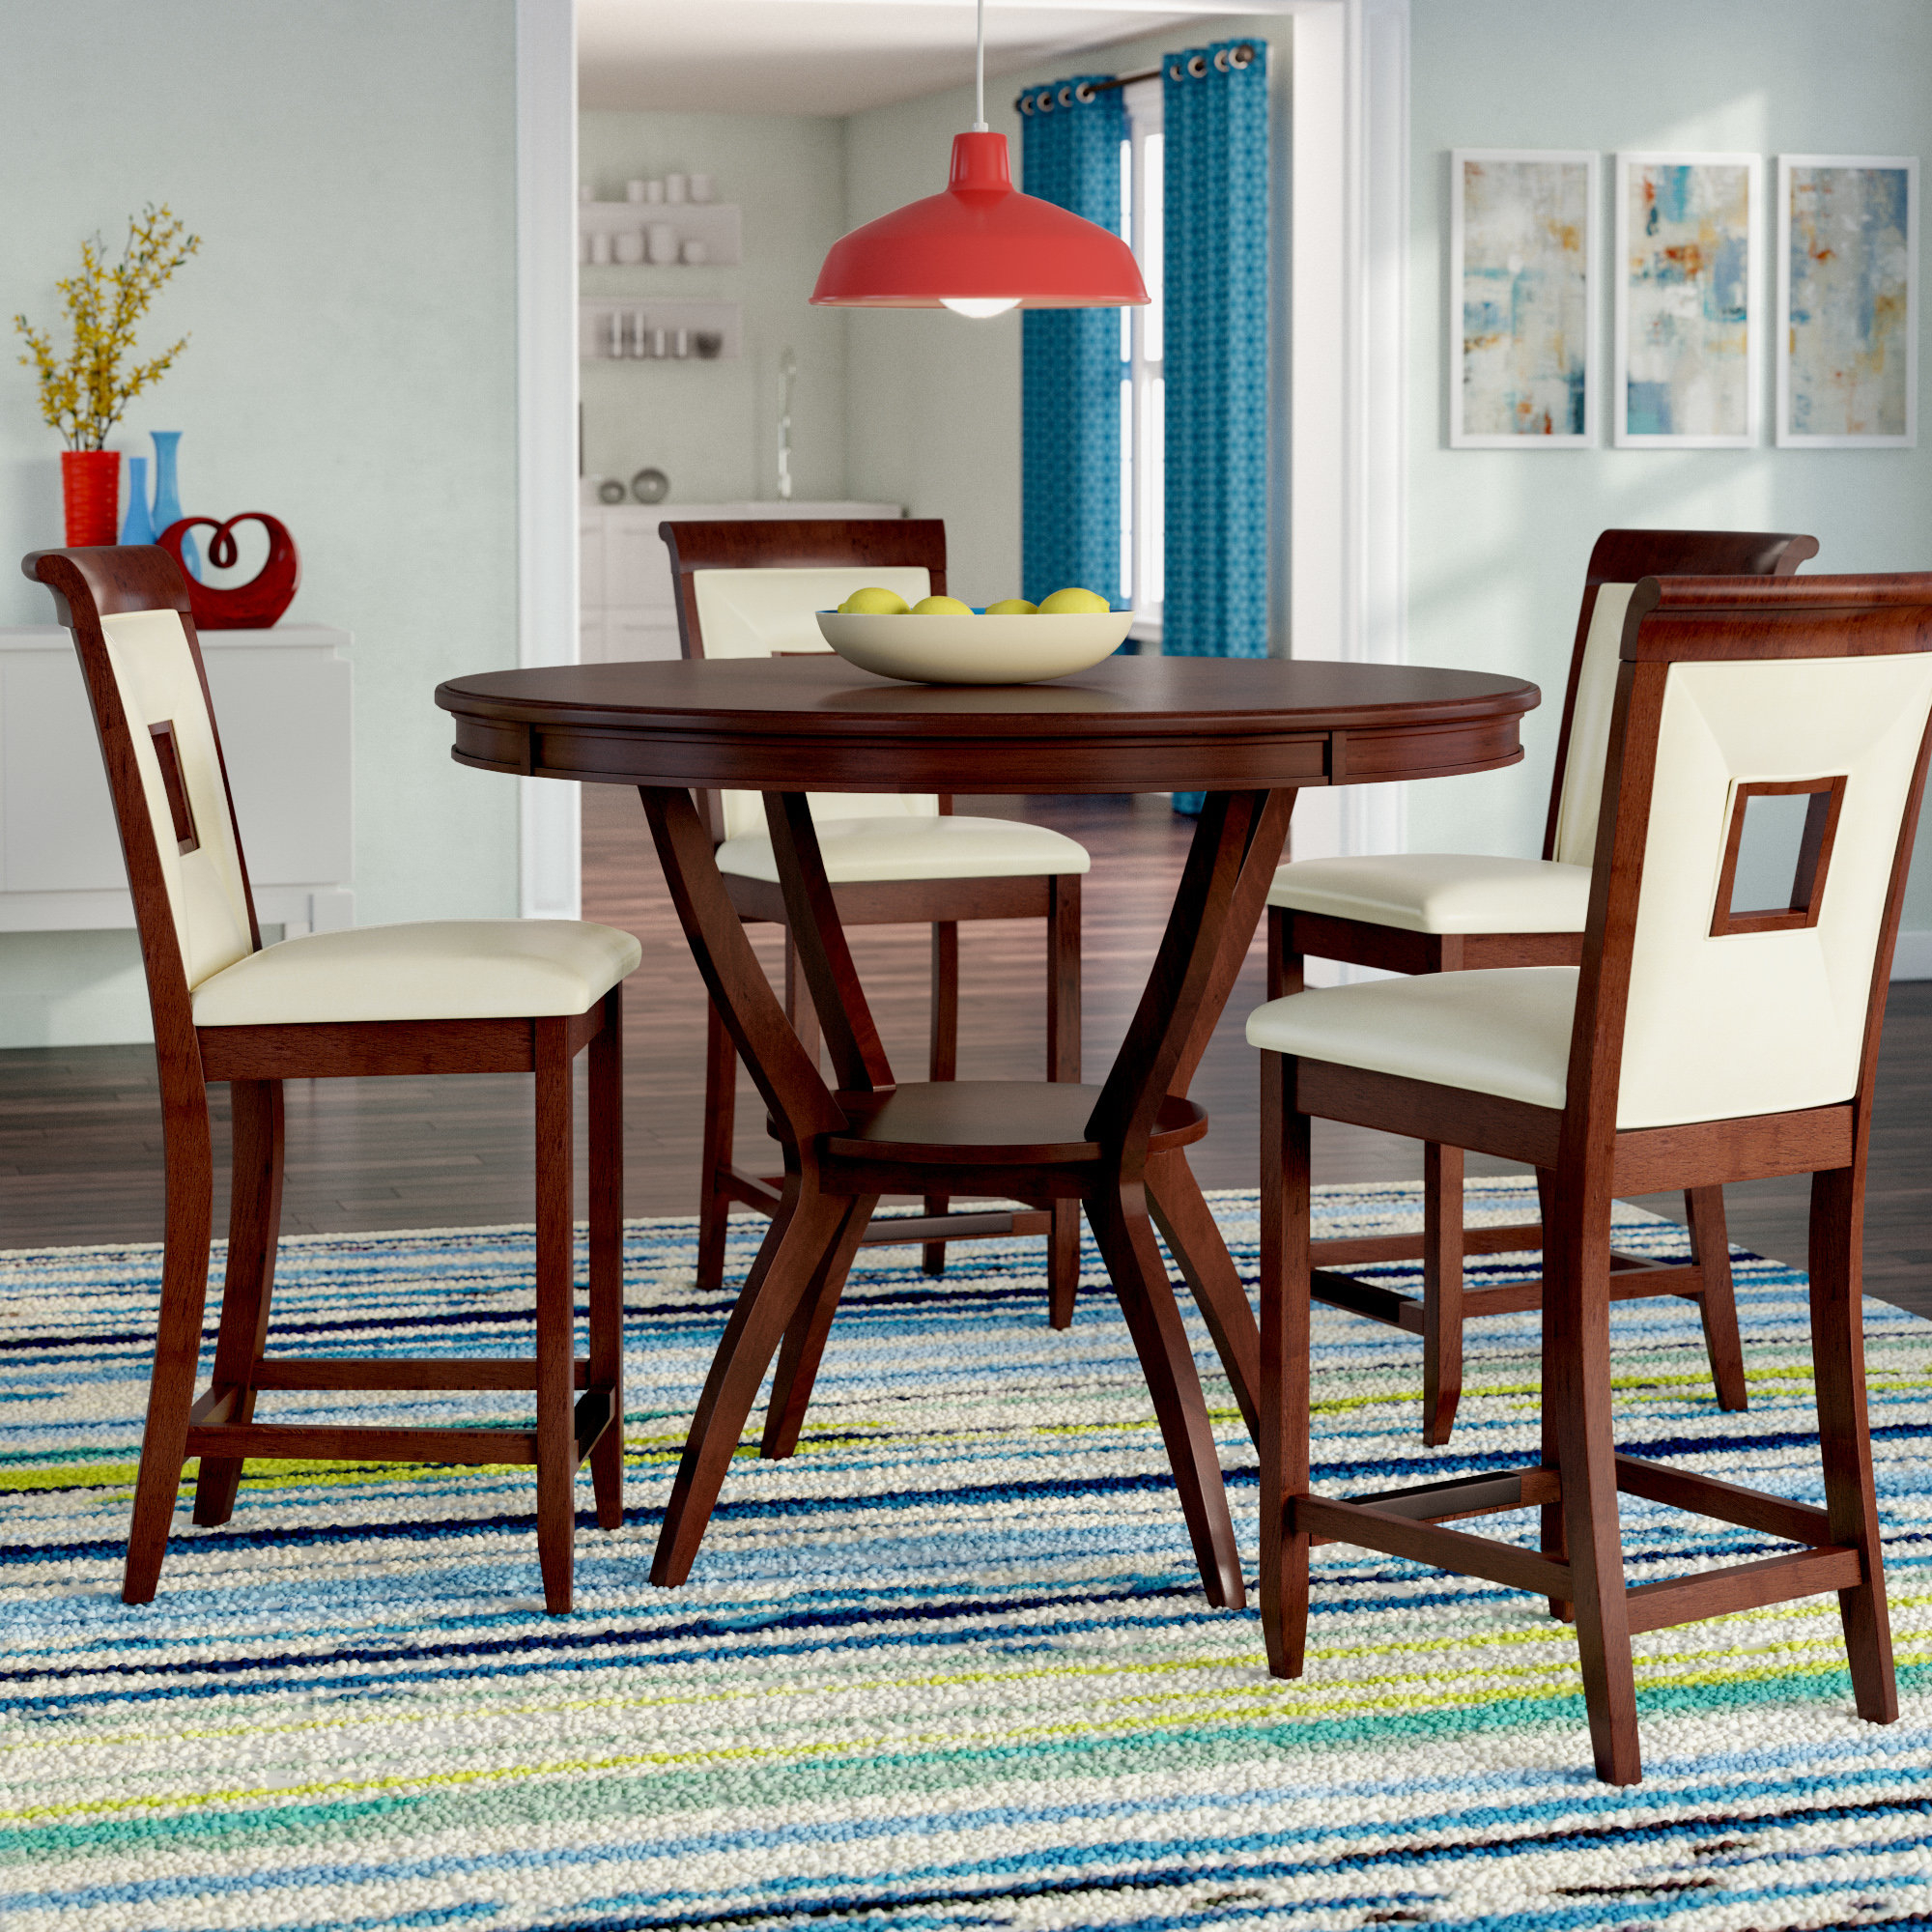 Deherrera 5 Piece Counter Height Dining Set Intended For 2018 Denzel 5 Piece Counter Height Breakfast Nook Dining Sets (Image 10 of 20)